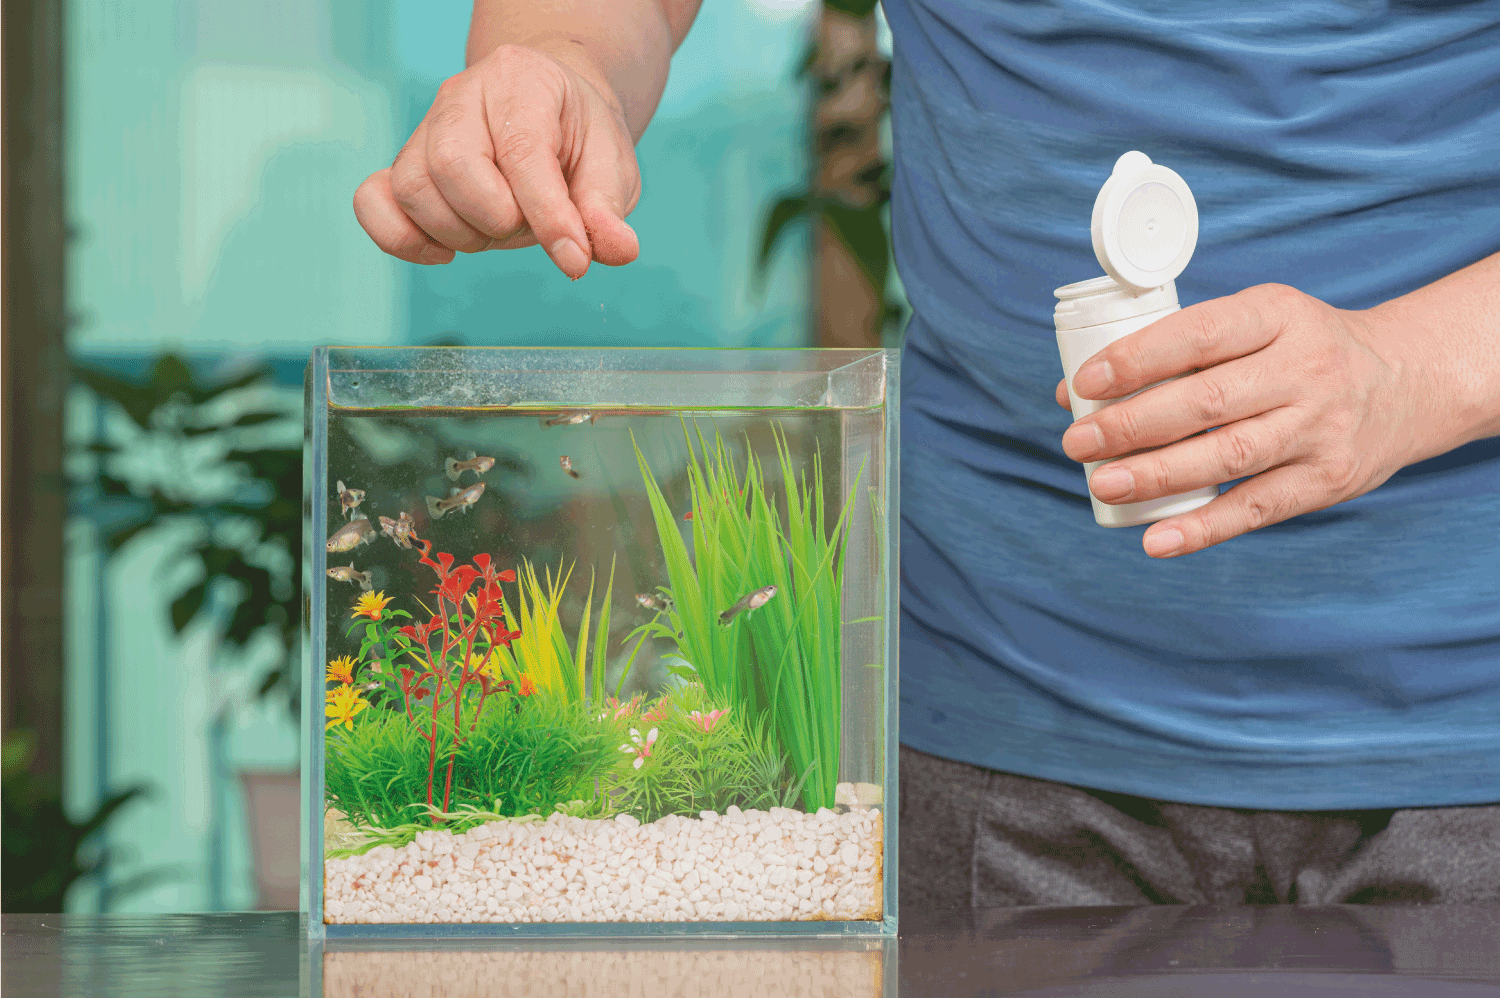 A middle-aged Asian man who feeds the guppy he raises in a small tank